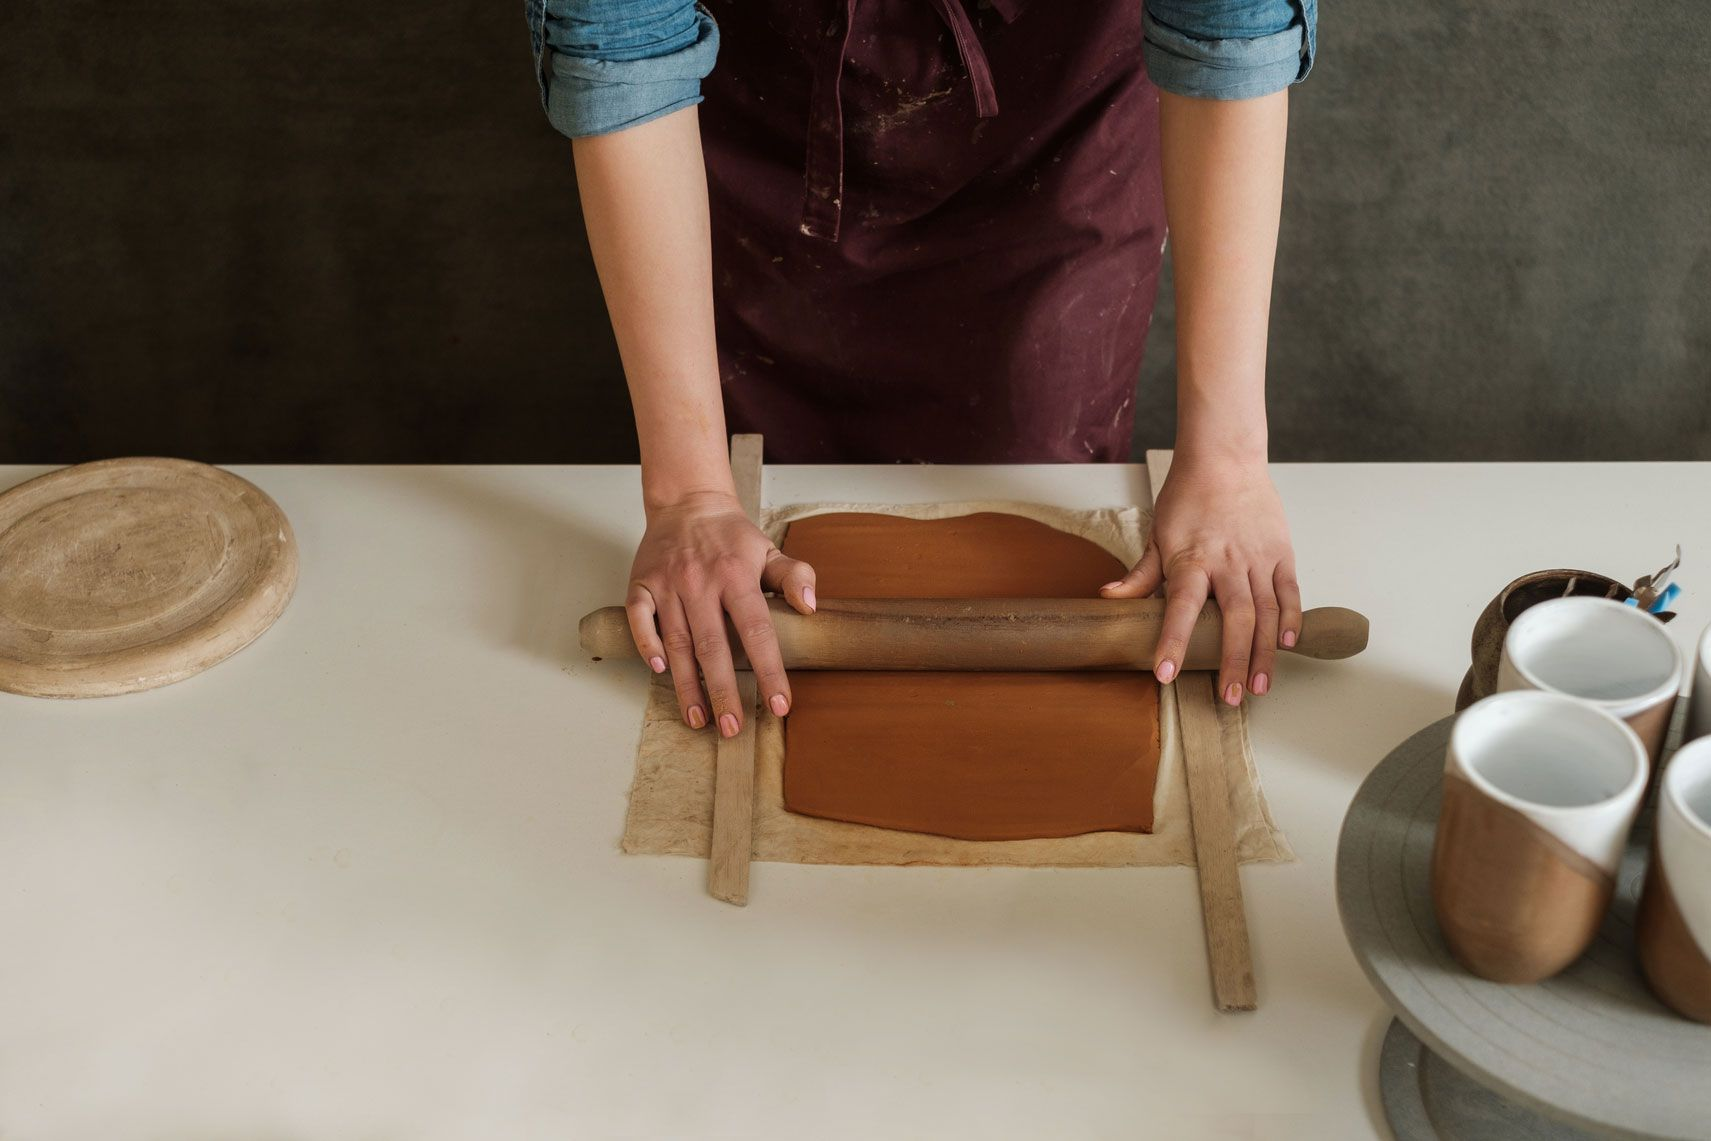 Rolling dough to an even thickness using two rulers